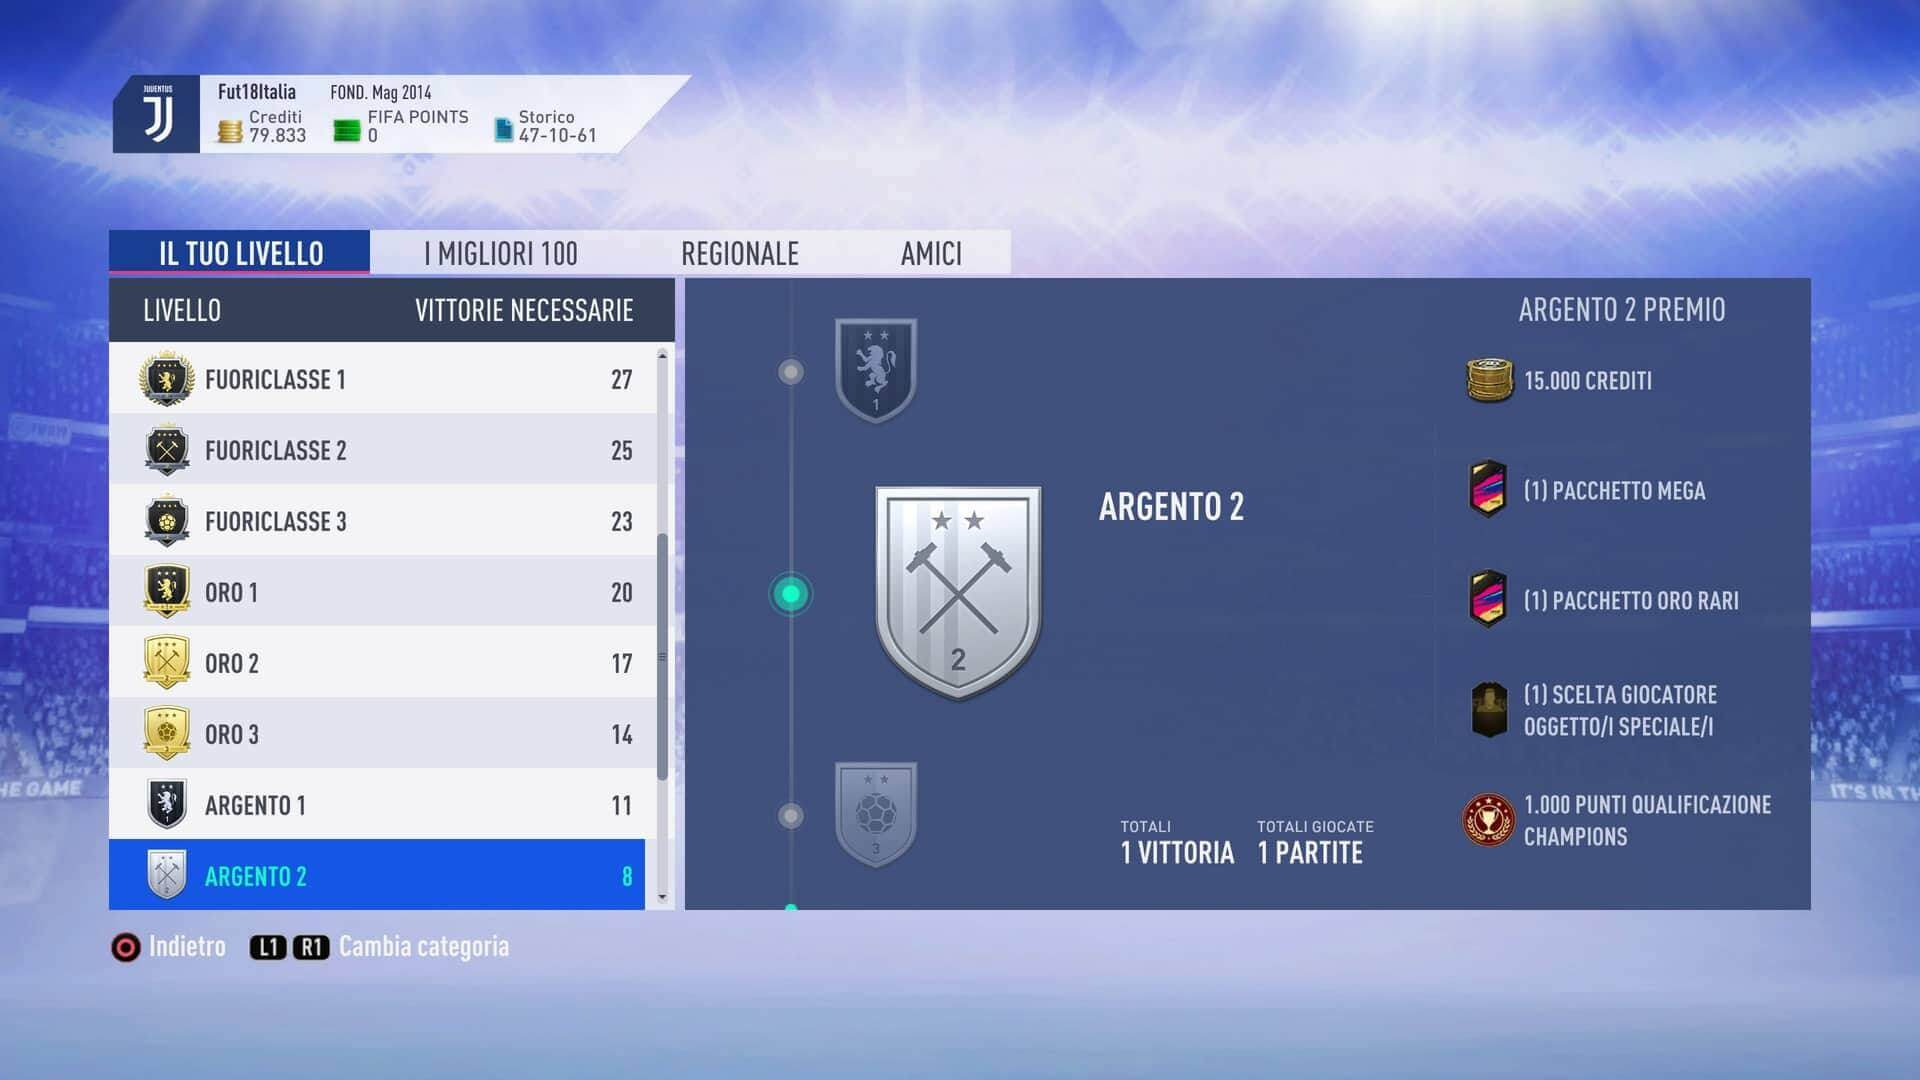 Vittorie necessarie per essere classificato in argento e oro in Weekend League